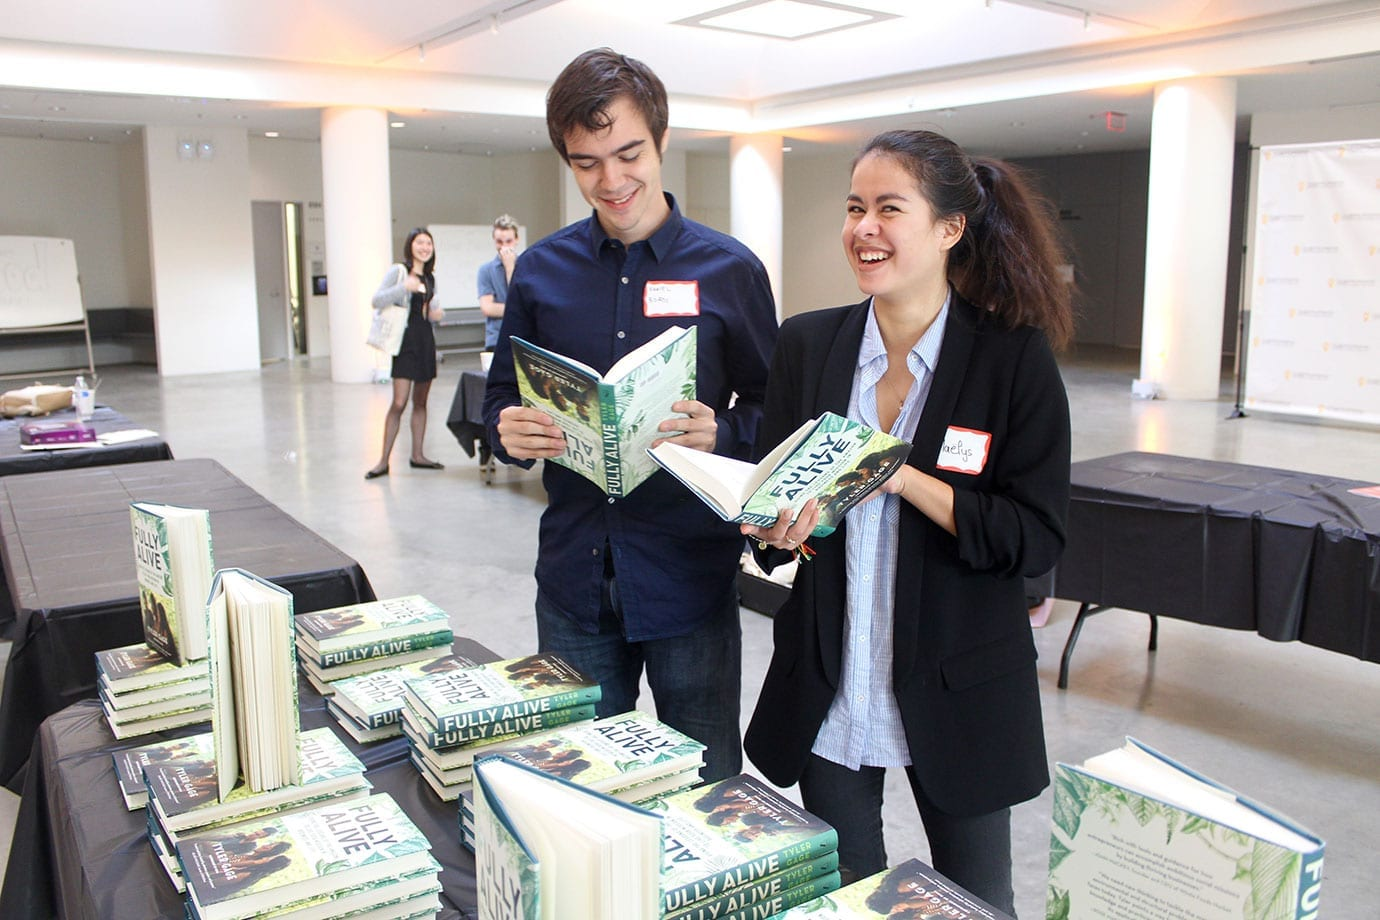 Daniel Bordi '18 and Maelys Gluck '18 check out Gage's book at the conference.